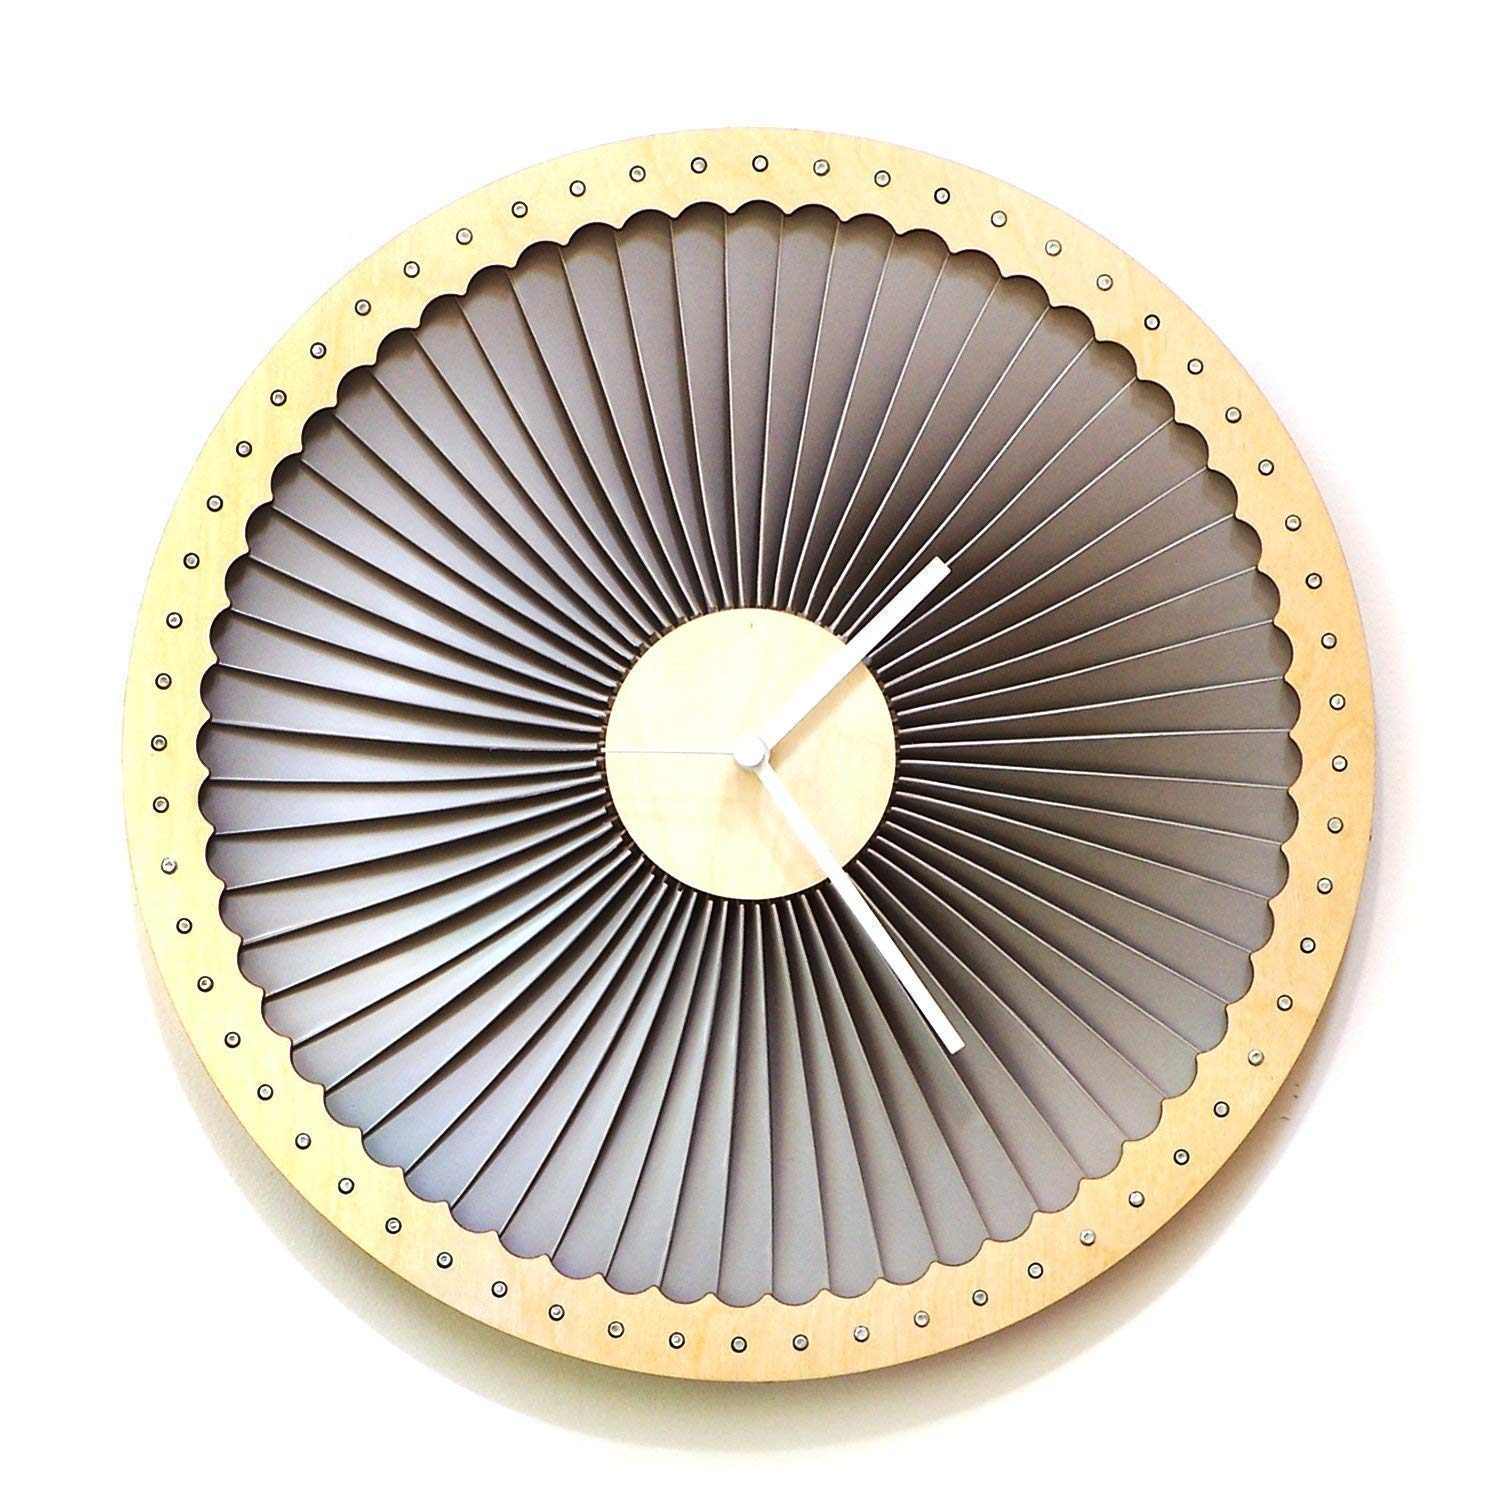 Turbine - 41cm (16) wood + plastic wall clock, contemporary wall art by ardeola